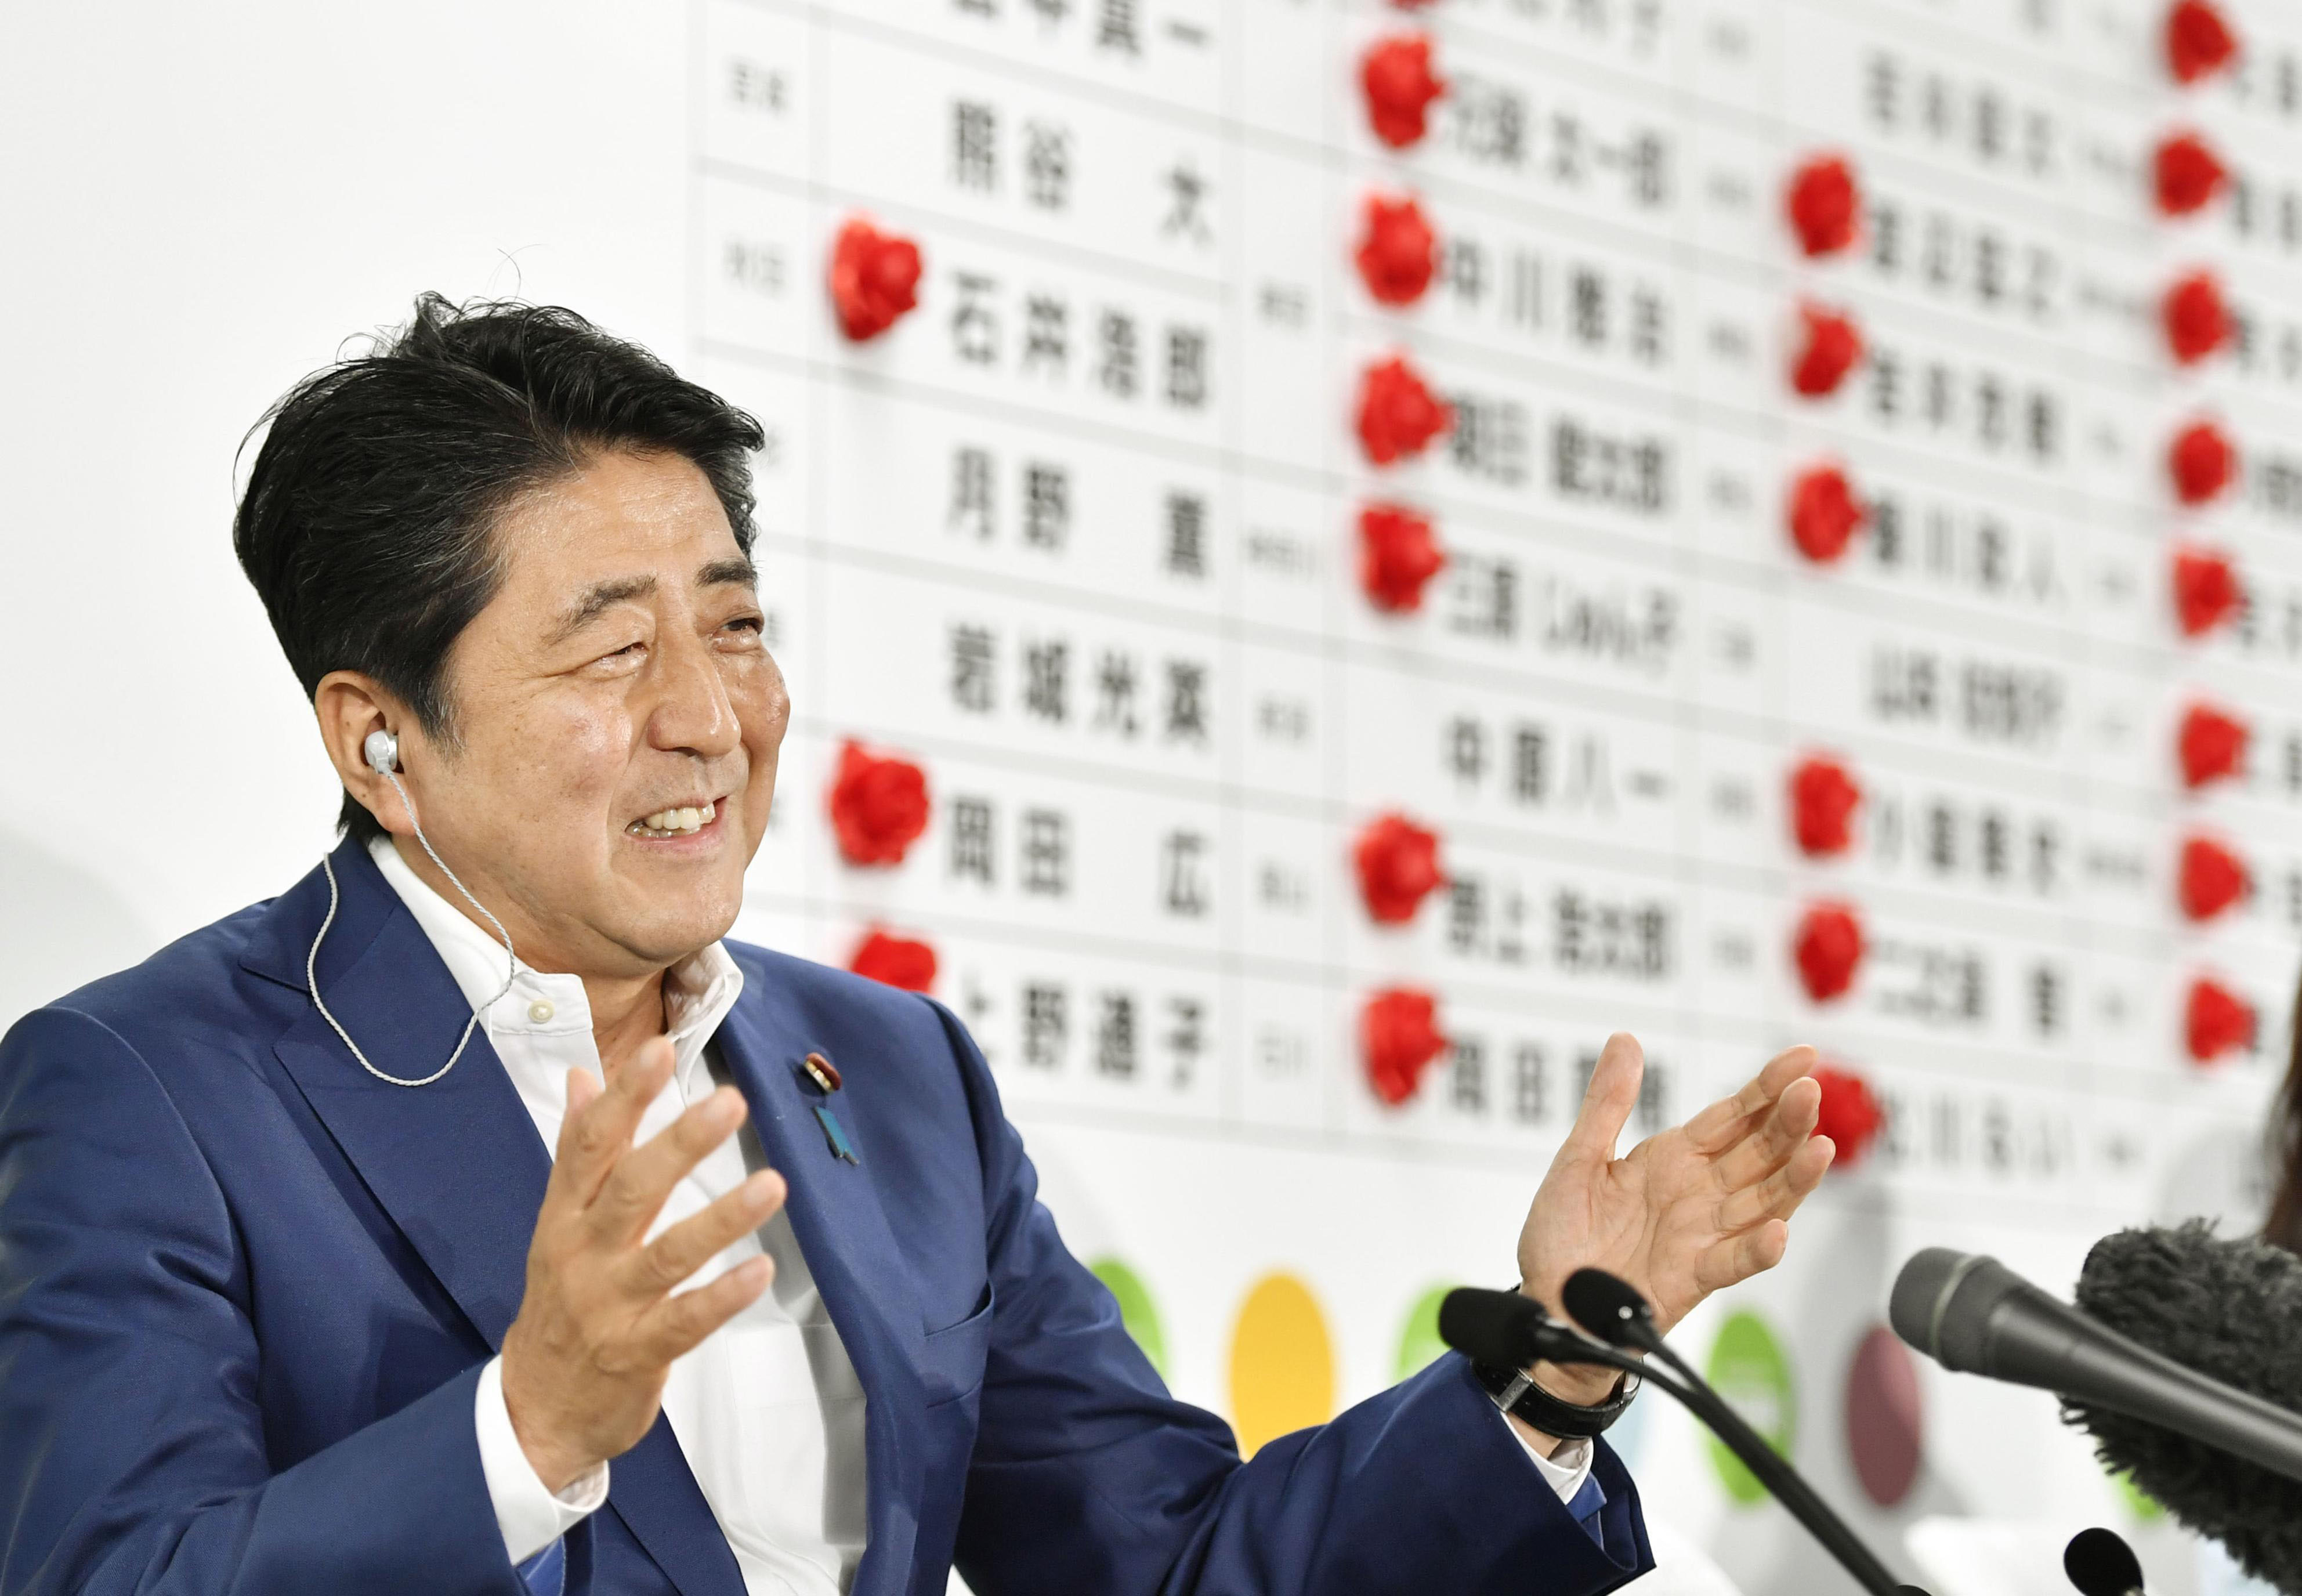 Nothing changes: Prime Minister Shinzo Abe, whose LDP won last month's election, speaks during the Upper House election at LDP headquarters in Tokyo on July 10, 2016. | KYODO